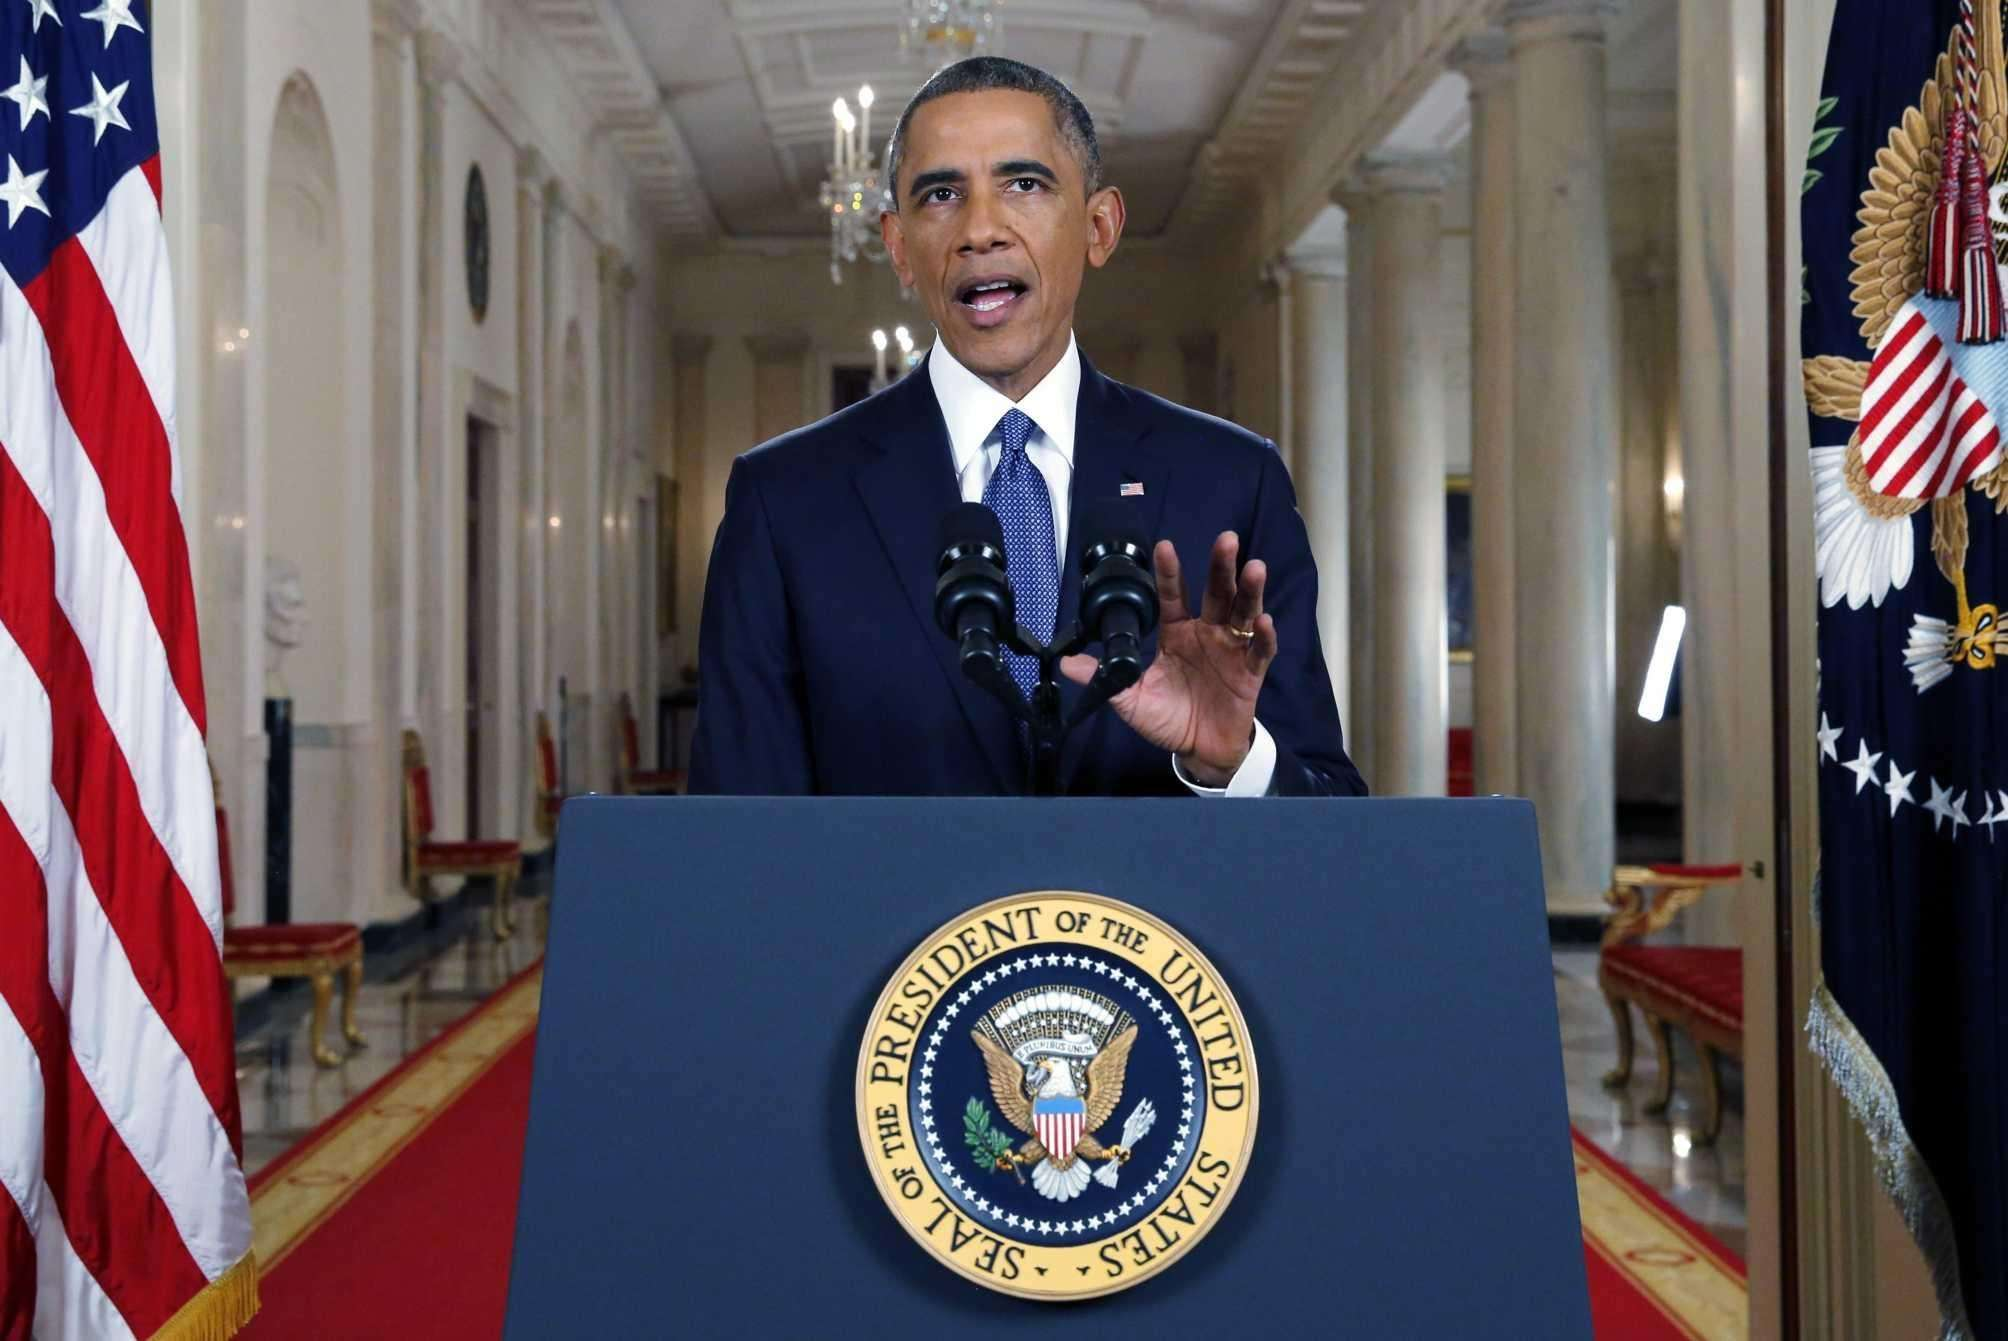 What if Obama's 8 years had been a TV show?